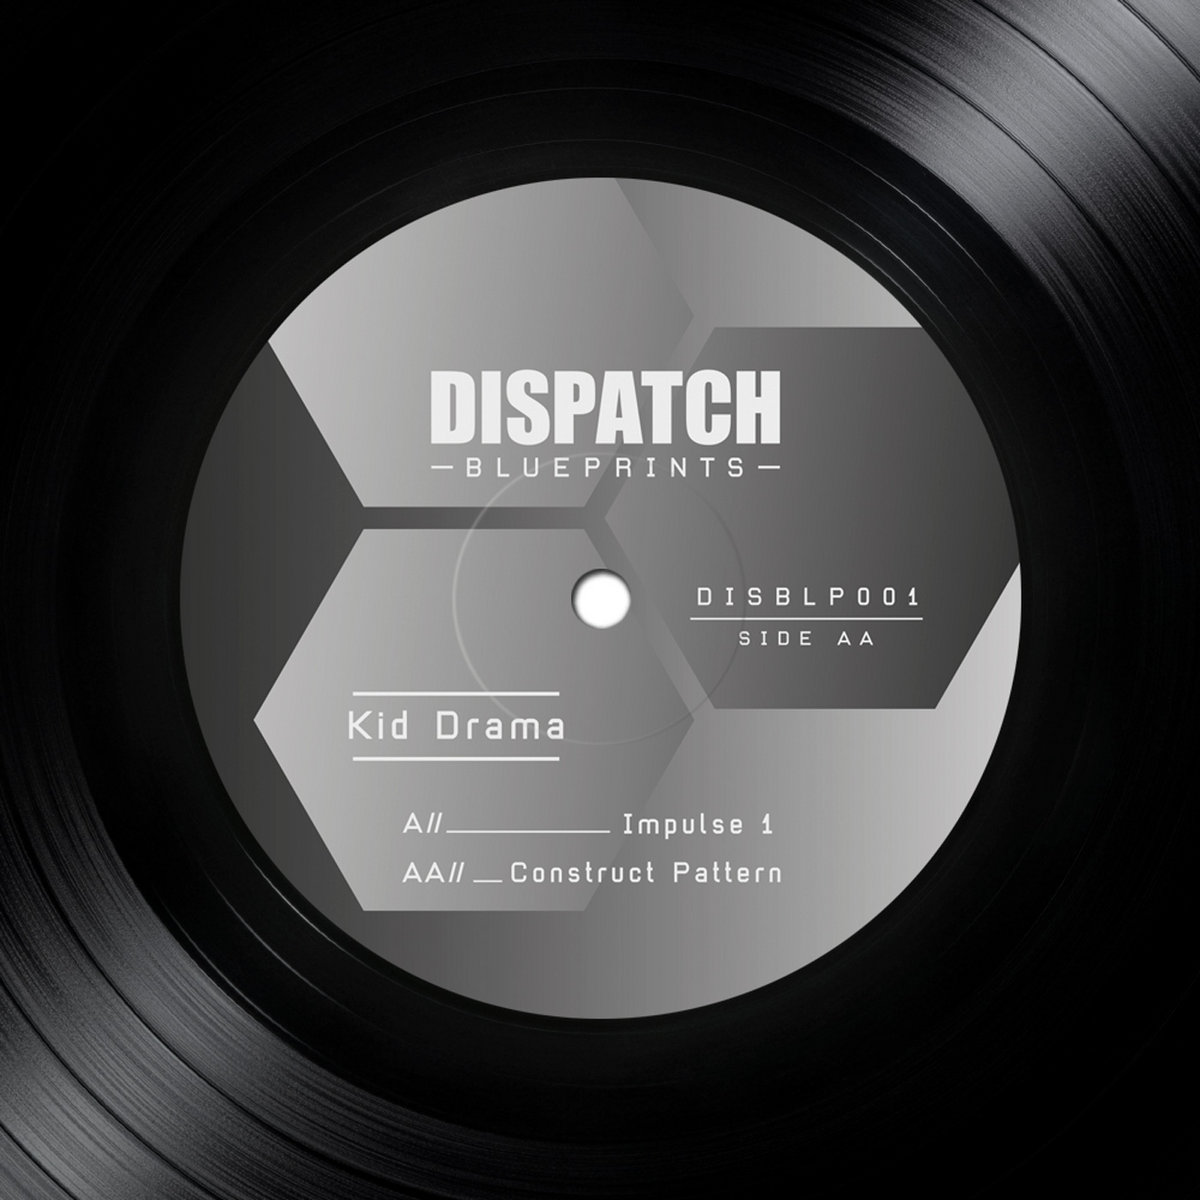 Dispatch blueprints 001 kid drama dispatch recordings introducing a new label with a direction we proudly present dispatch blueprints with the debut release coming from one of our favourite artists malvernweather